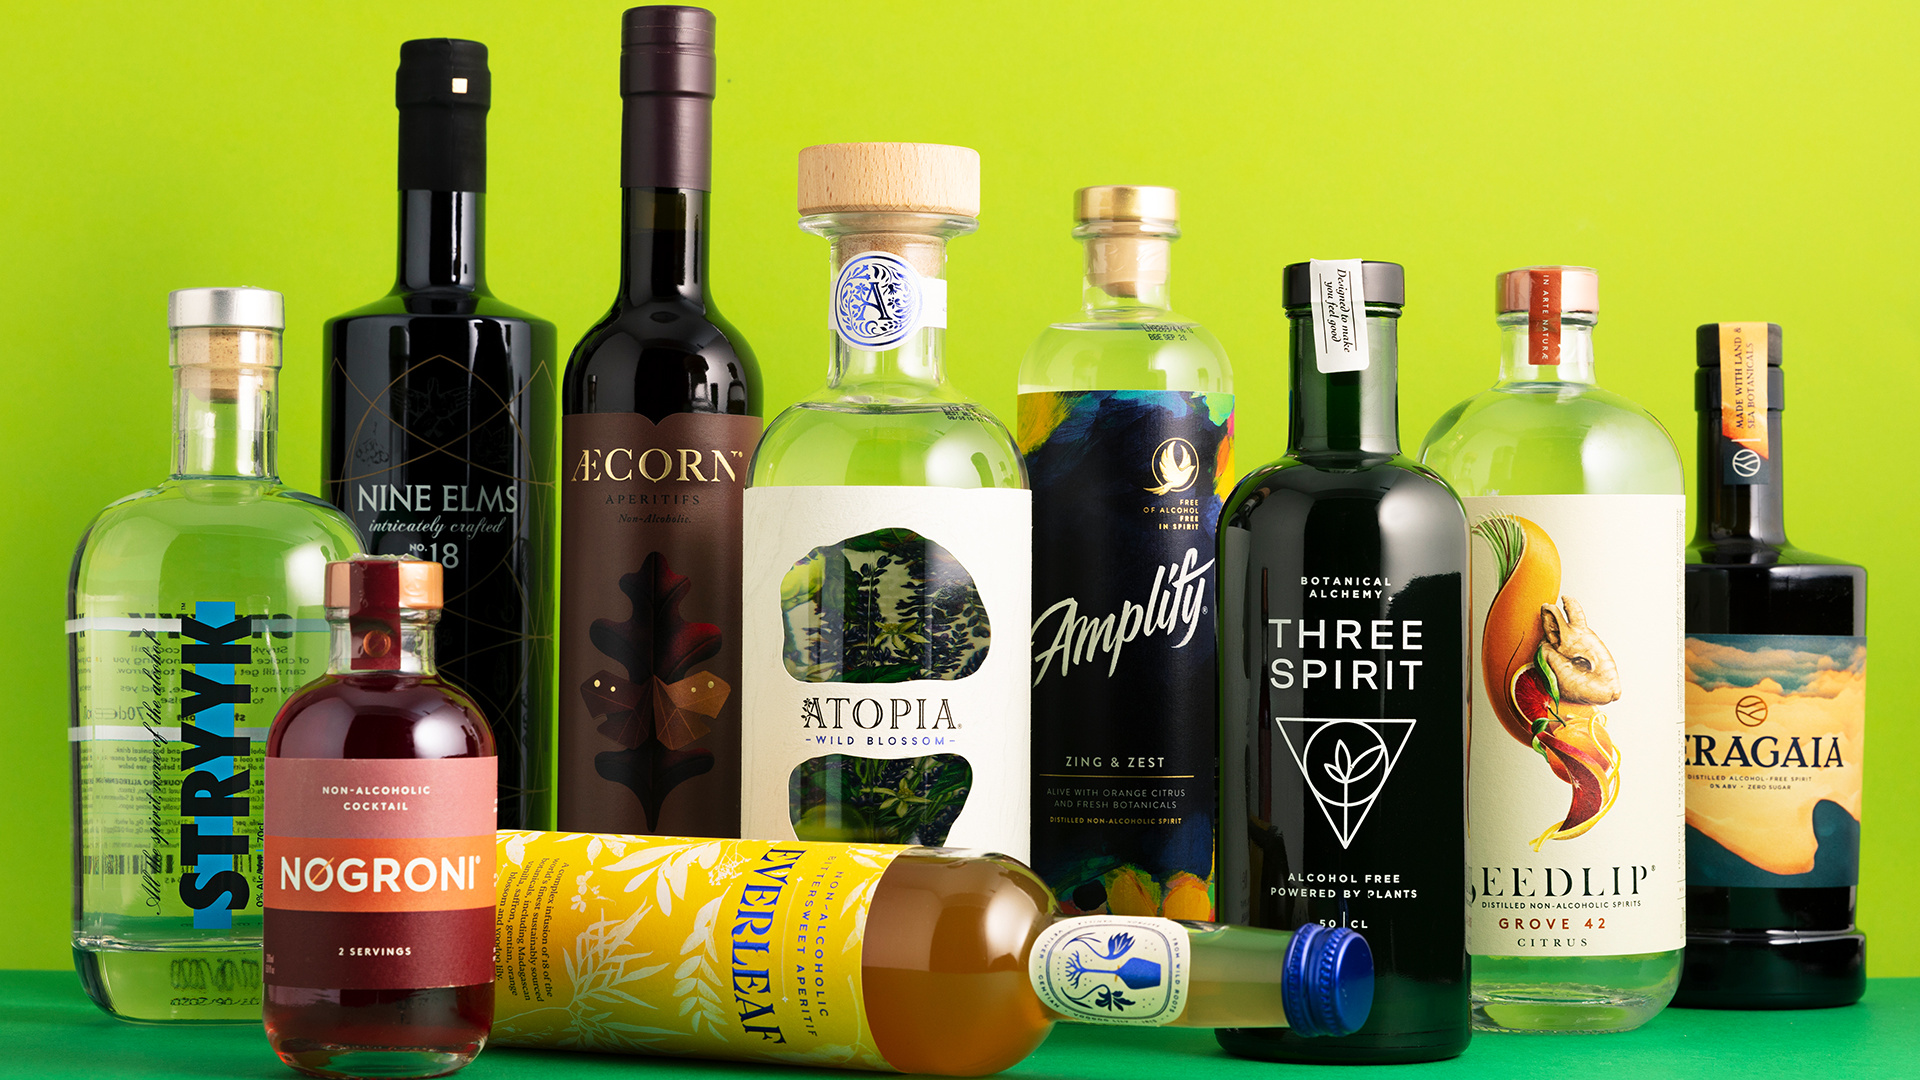 10 Best Non-Alcoholic Spirits: A selection of the non-alcoholic spirits team Foodism tried